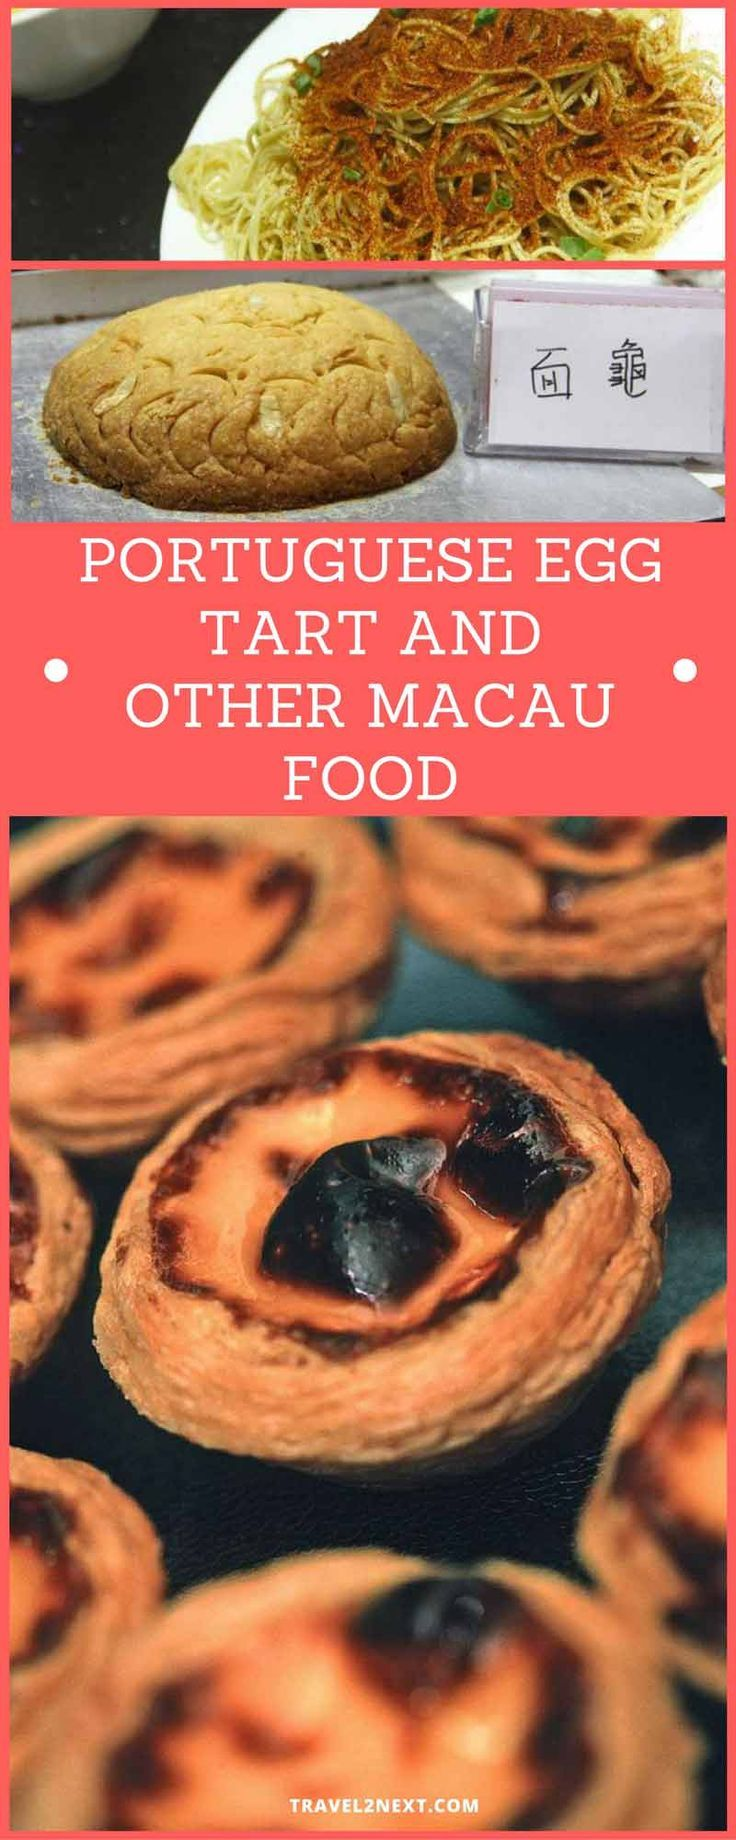 Portuguese egg tart and other Macau food. Macanese cuisine is a melding of Portuguese and southern Chinese culinary styles.